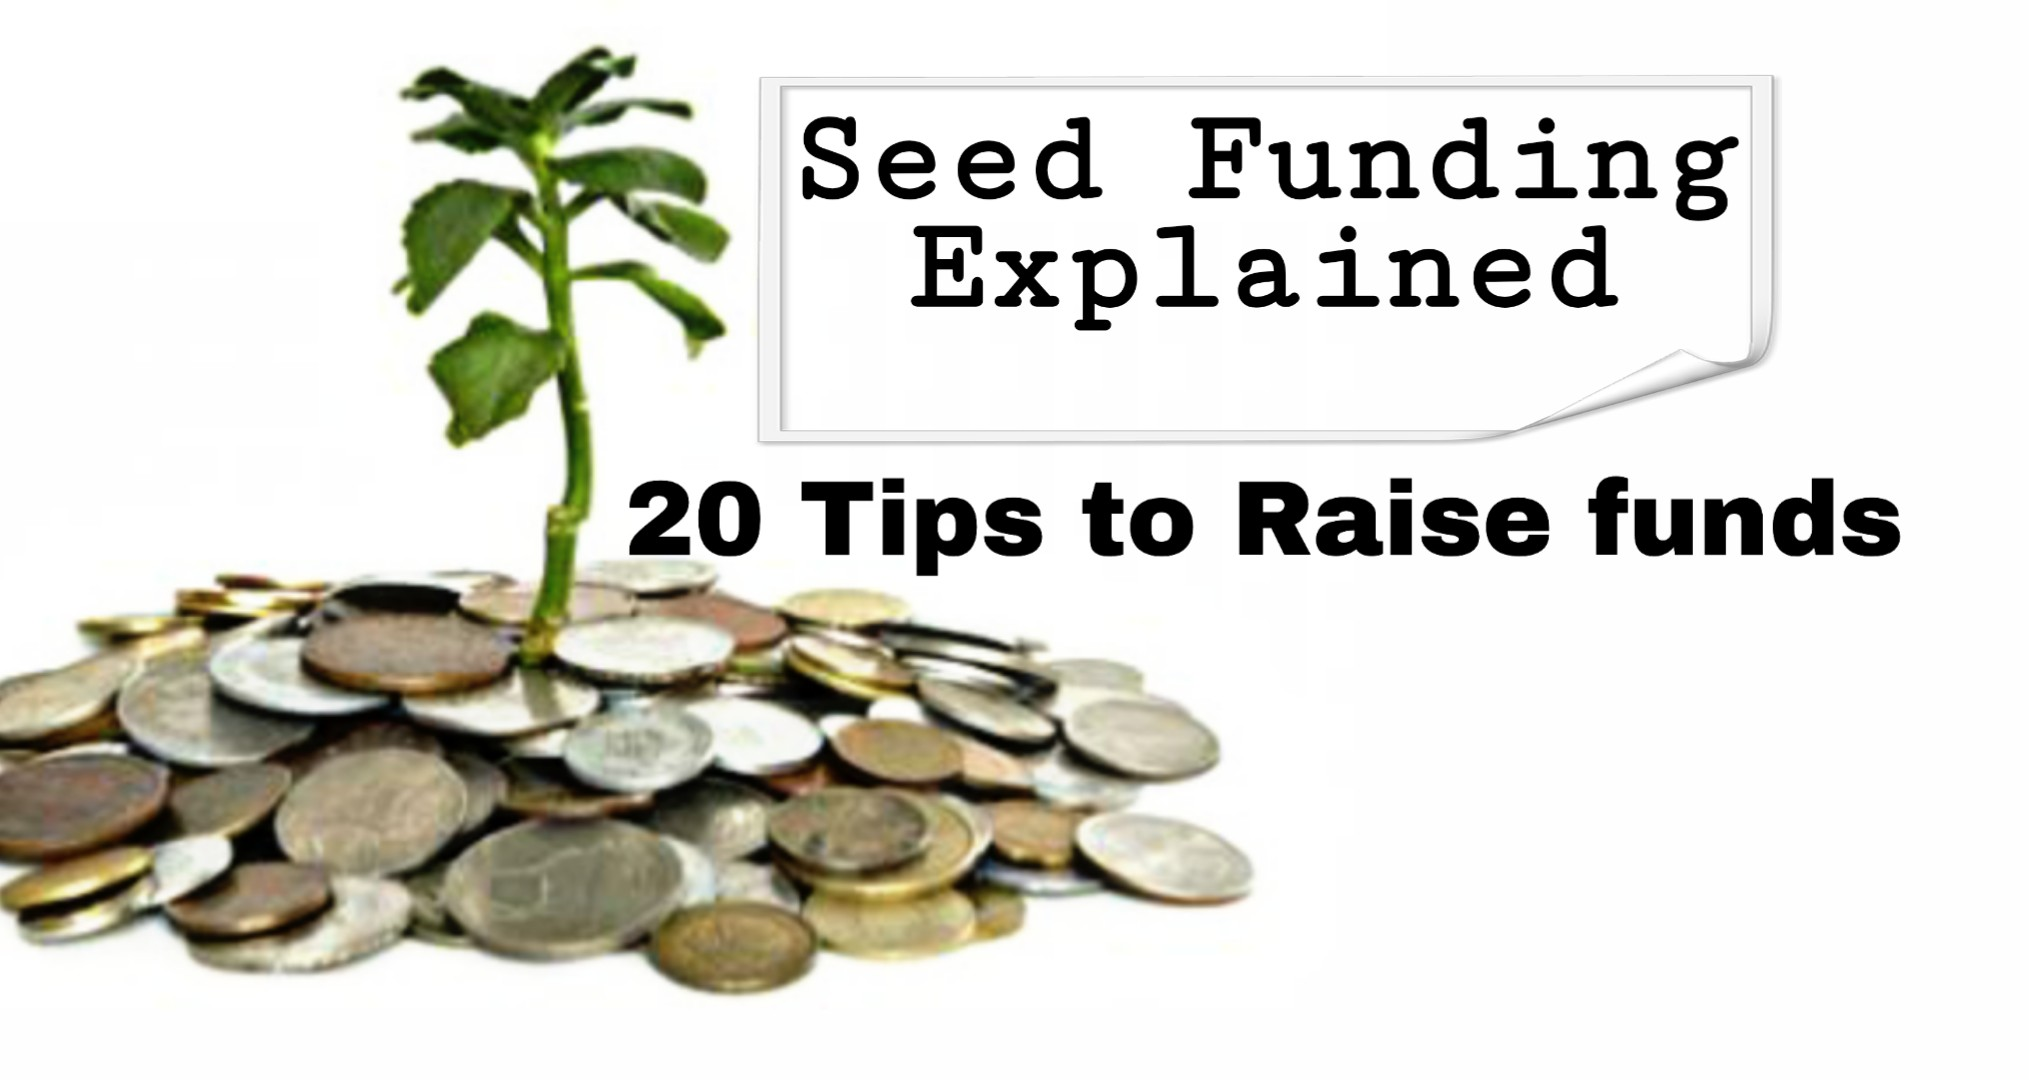 Seed funding for startup